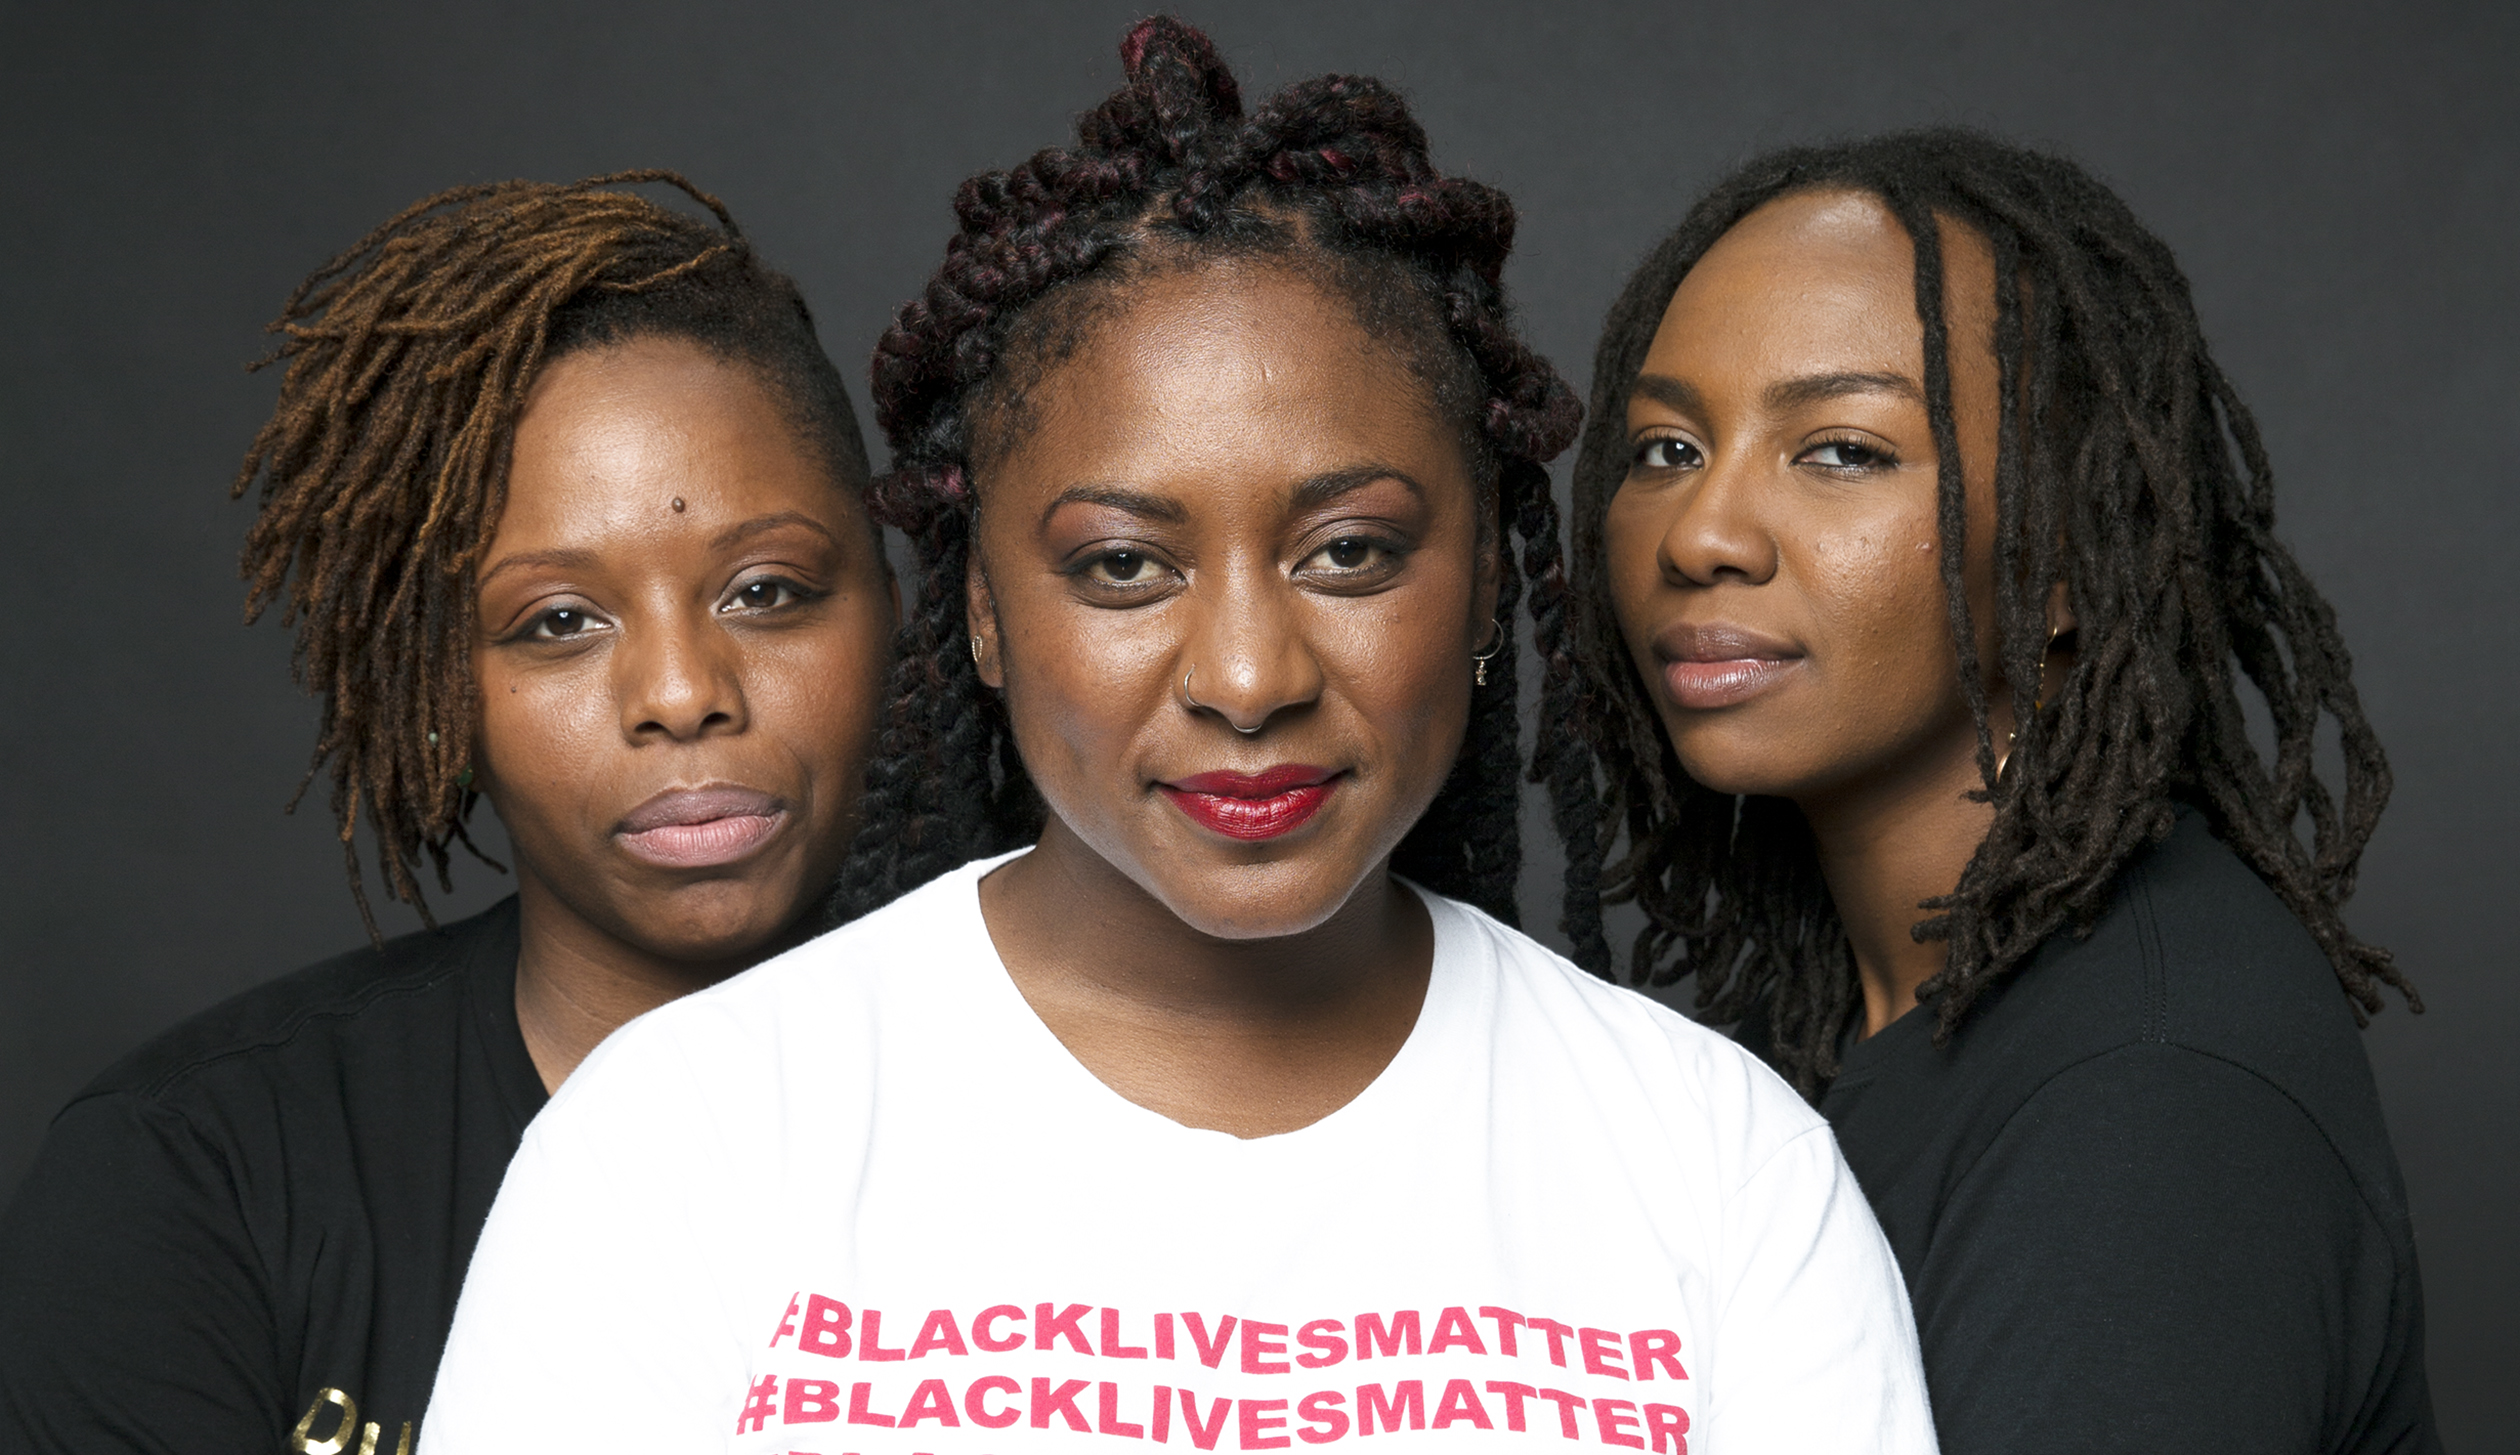 No. 27: Alicia Garza, Patrisse Cullors, and Opal Tometi, Co-Founders of Black Lives Matter